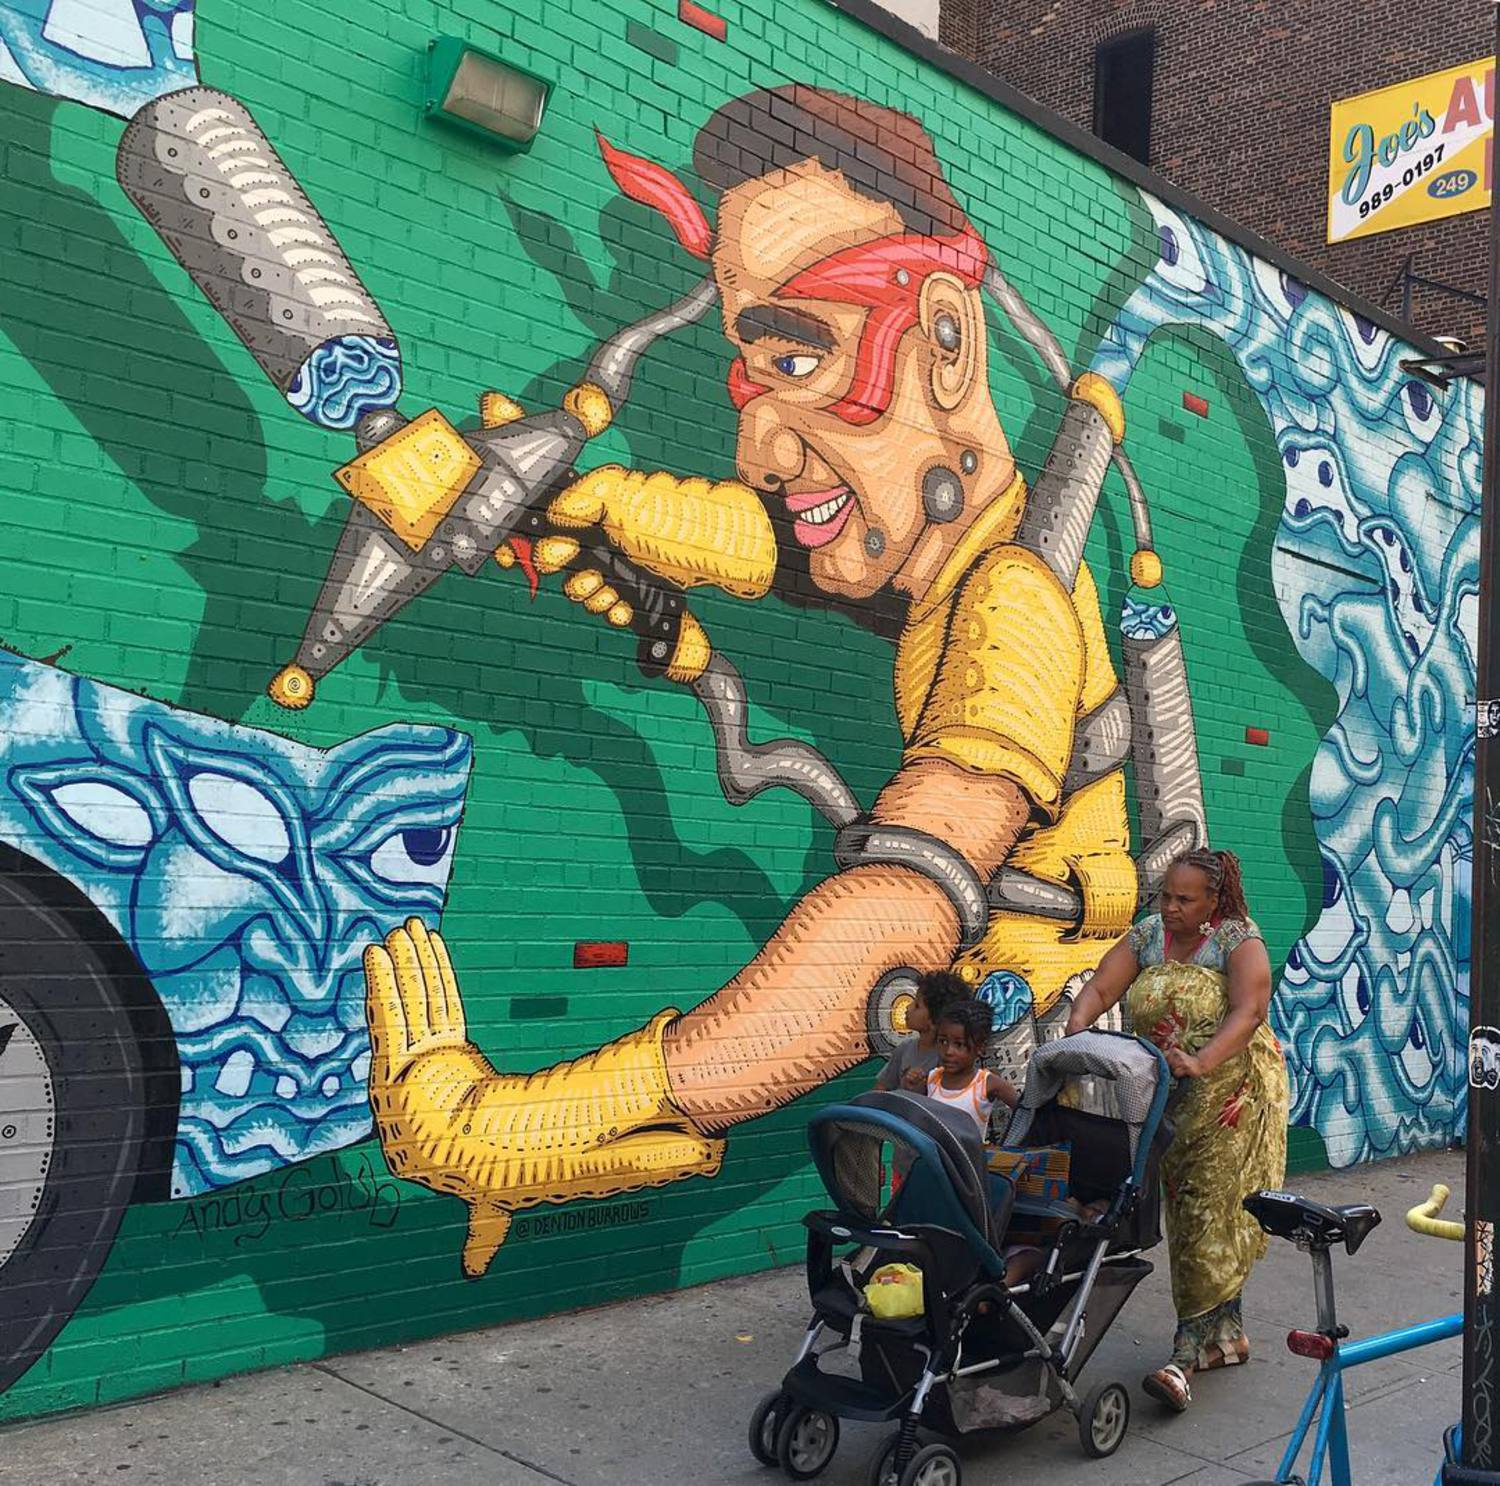 Cool colab by @andygolub & @dentonburrows on 25th & 10th Ave #streetart #streetartnyc